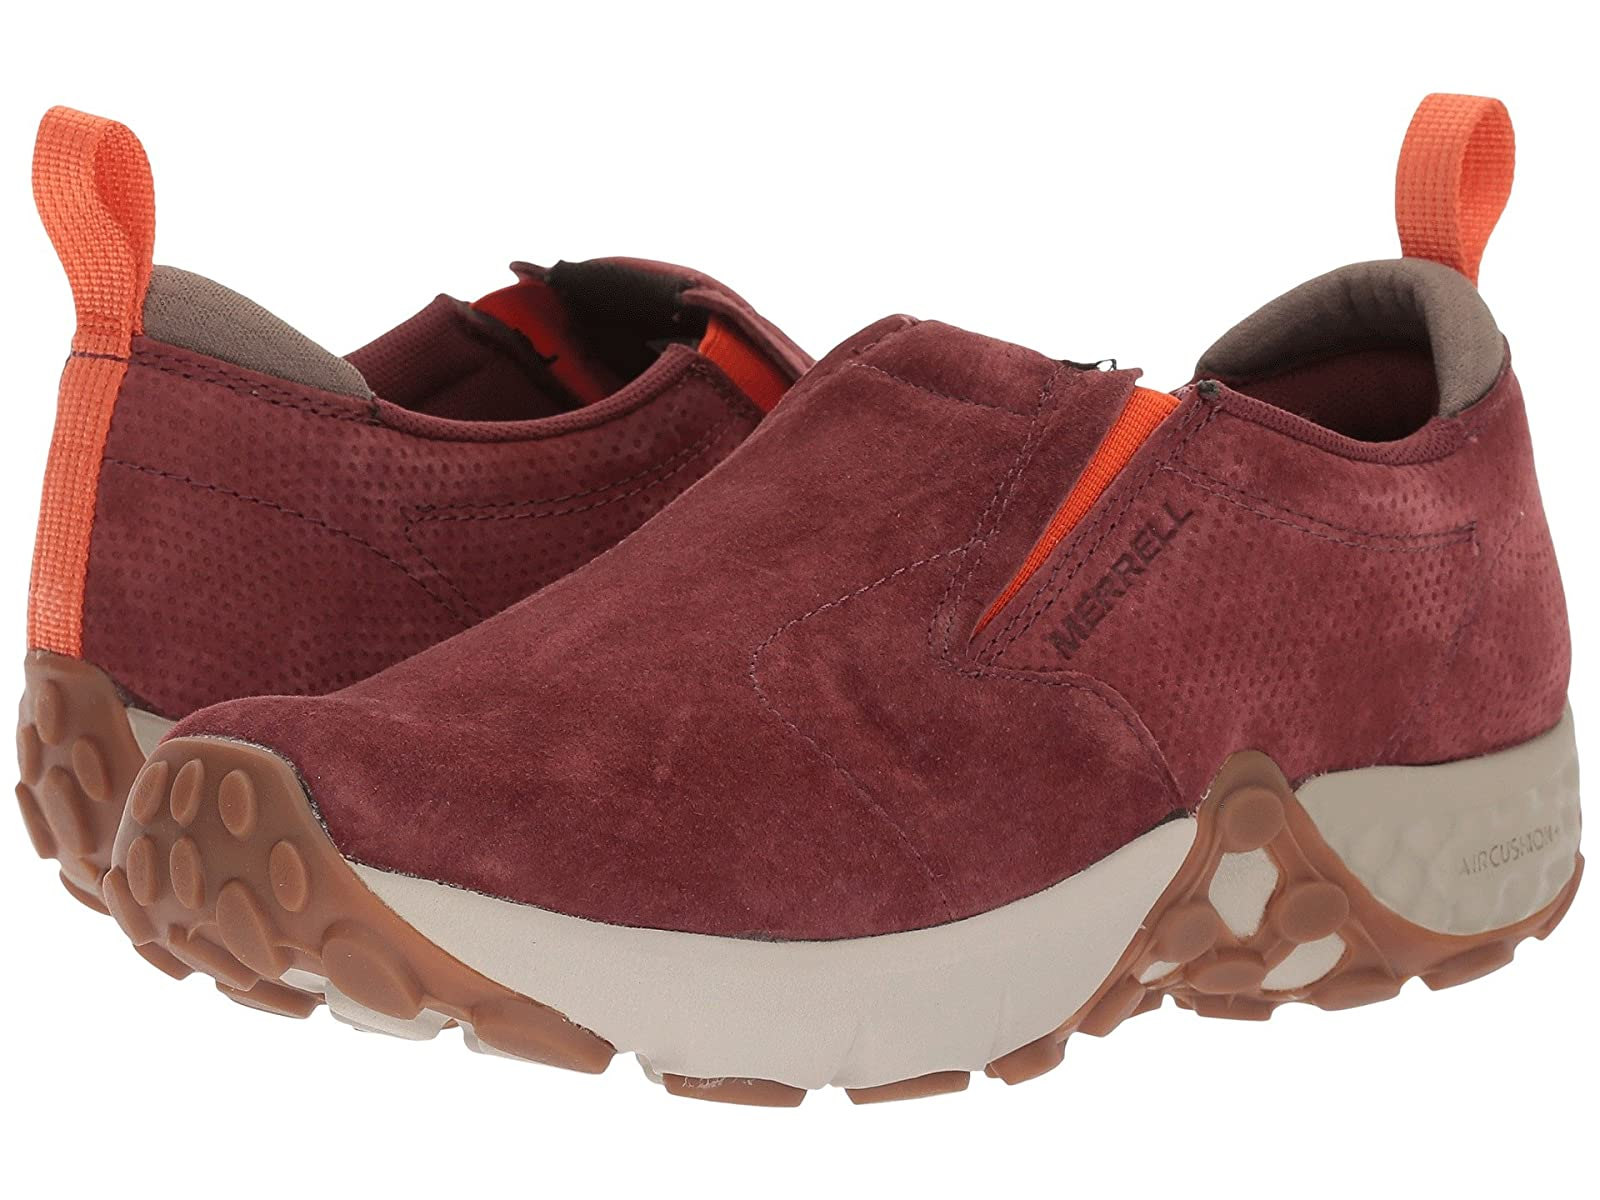 Merrell Jungle Moc AC+Cheap and distinctive eye-catching shoes